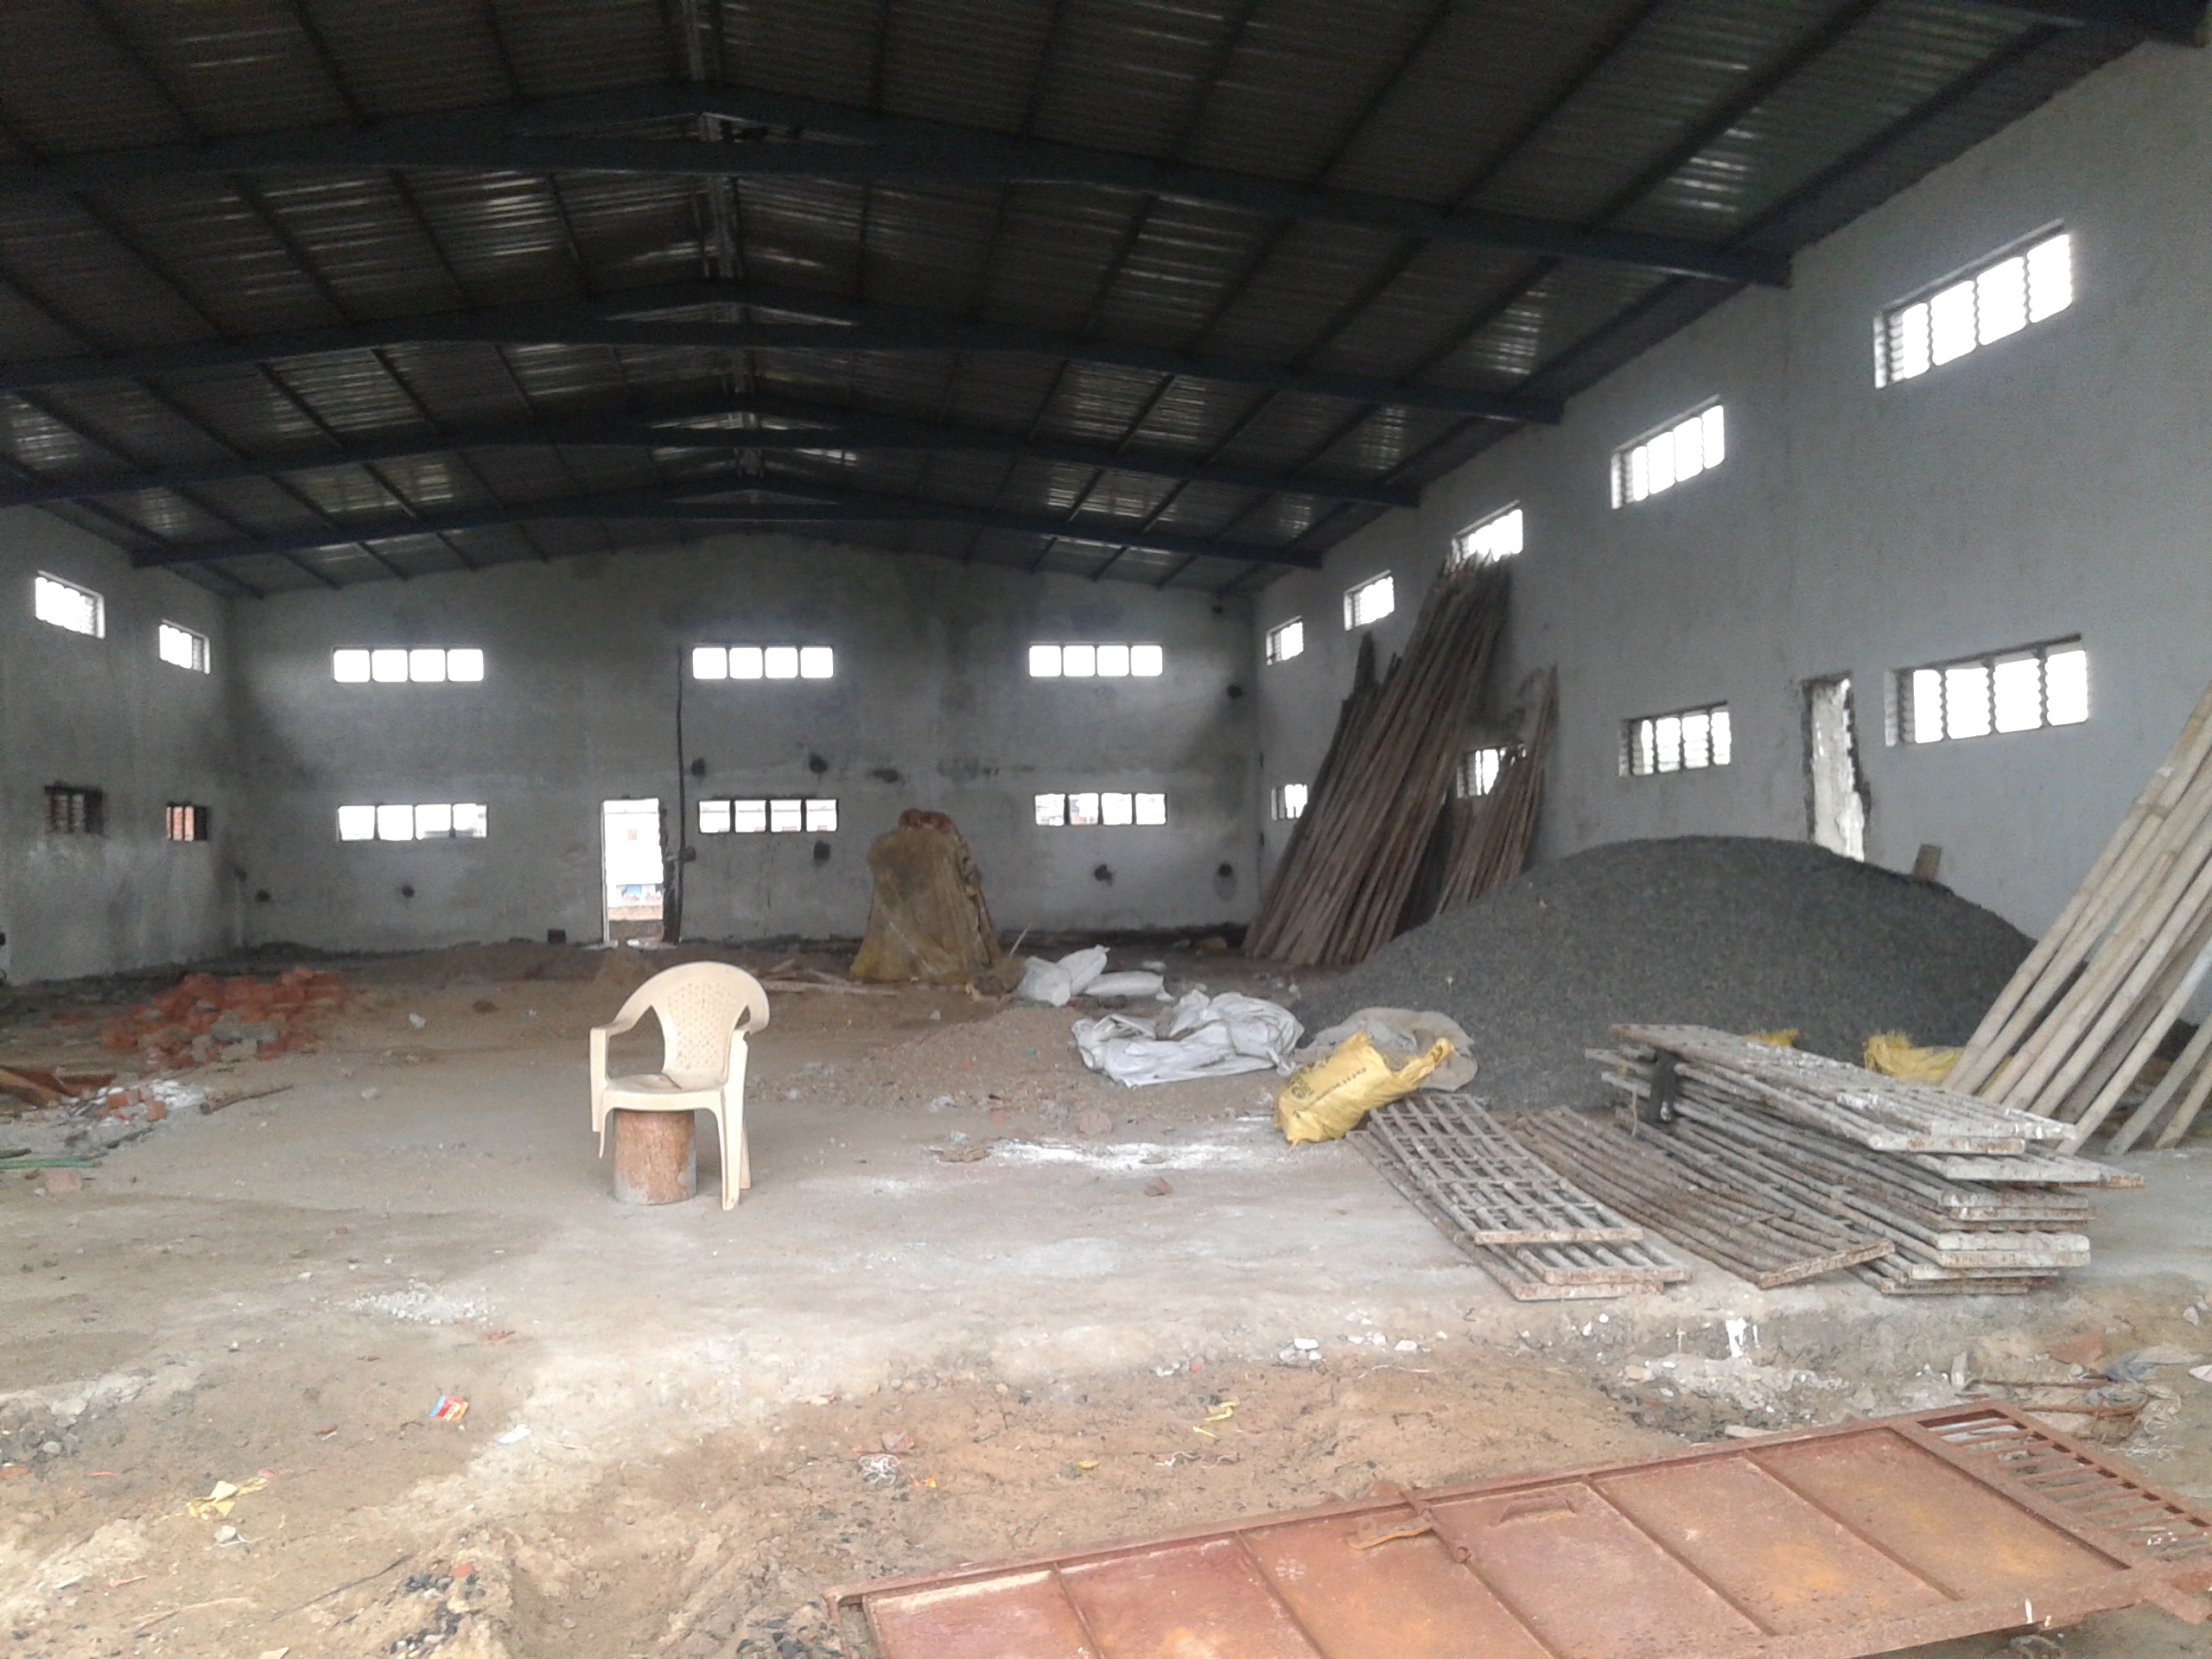 985000 SQ.FT FACTORY FOR RENT | LEASE IN CHANGODAR AHMEDABAD – 7043395463